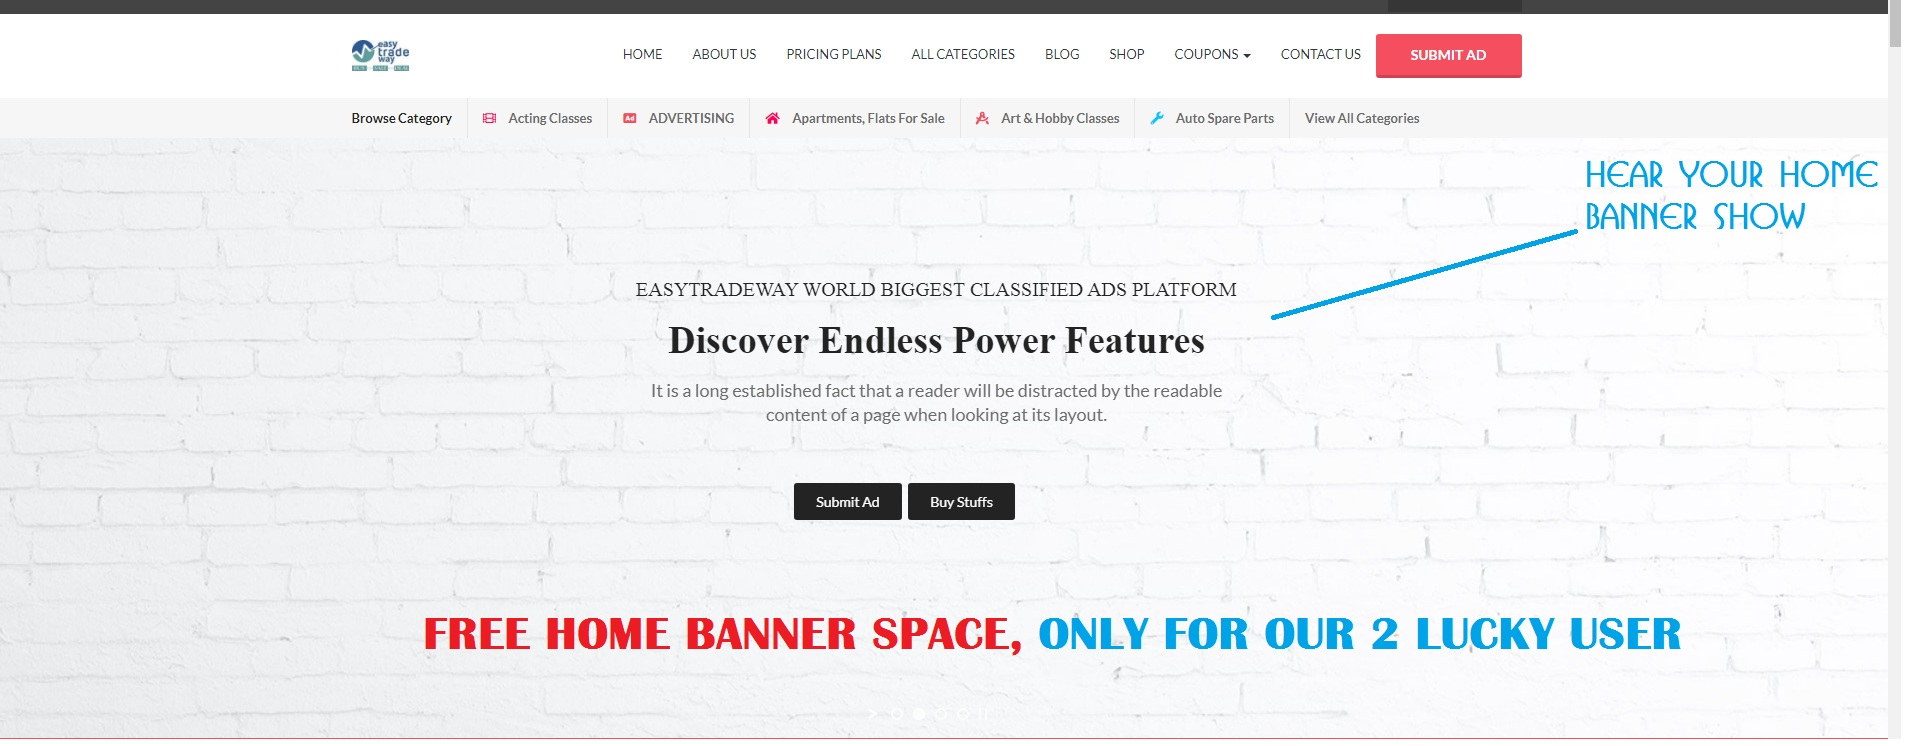 FASTIVAL OFFER— Free Home Banner & Store Pages Banner Ads